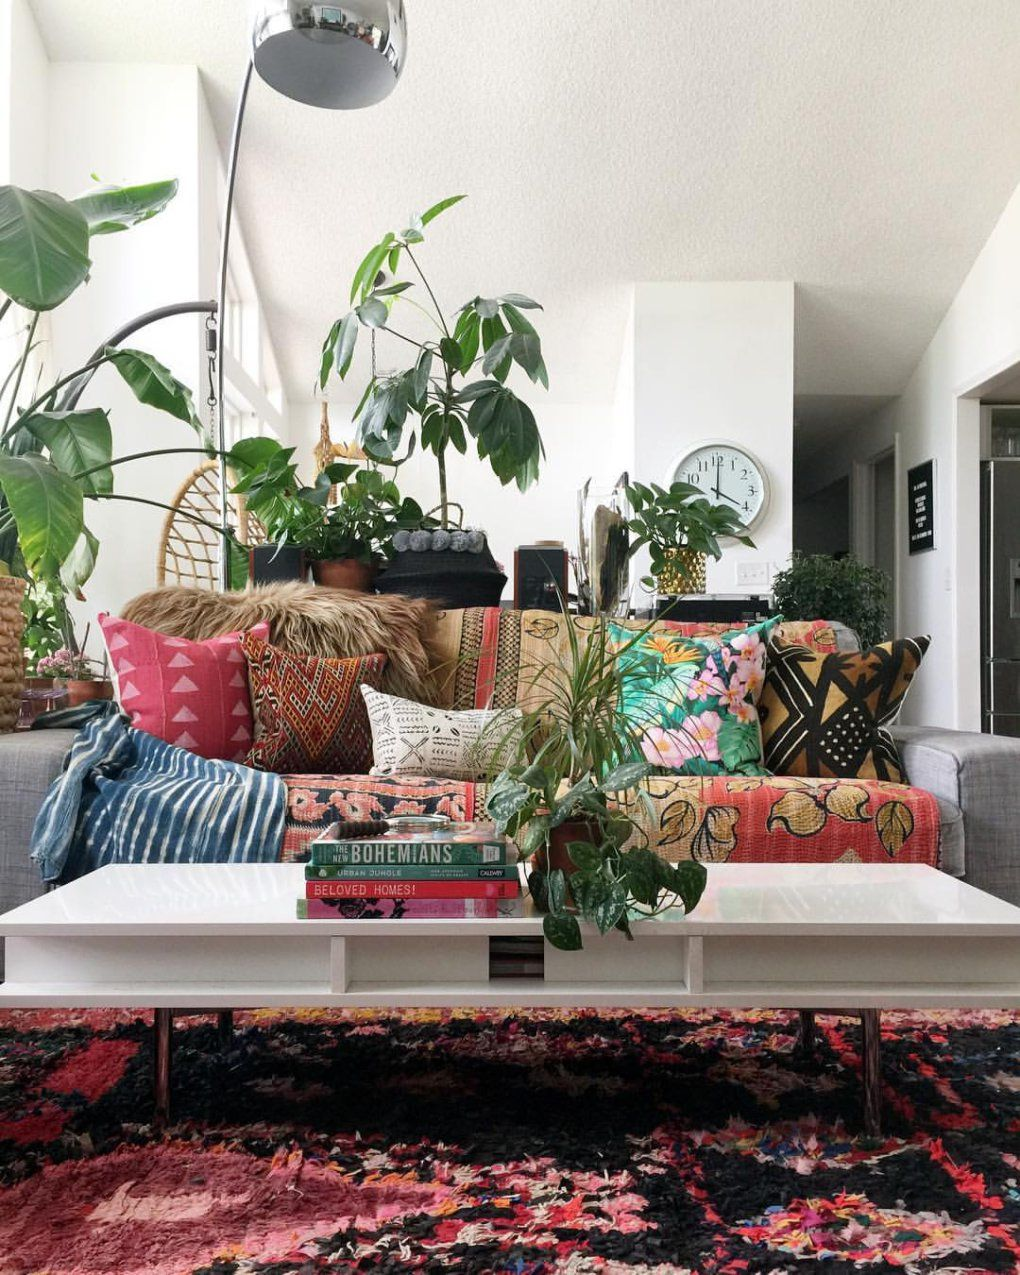 Mixing Vintage With A Touch Of Hippie To Create An Inspiring Modern Boho Home